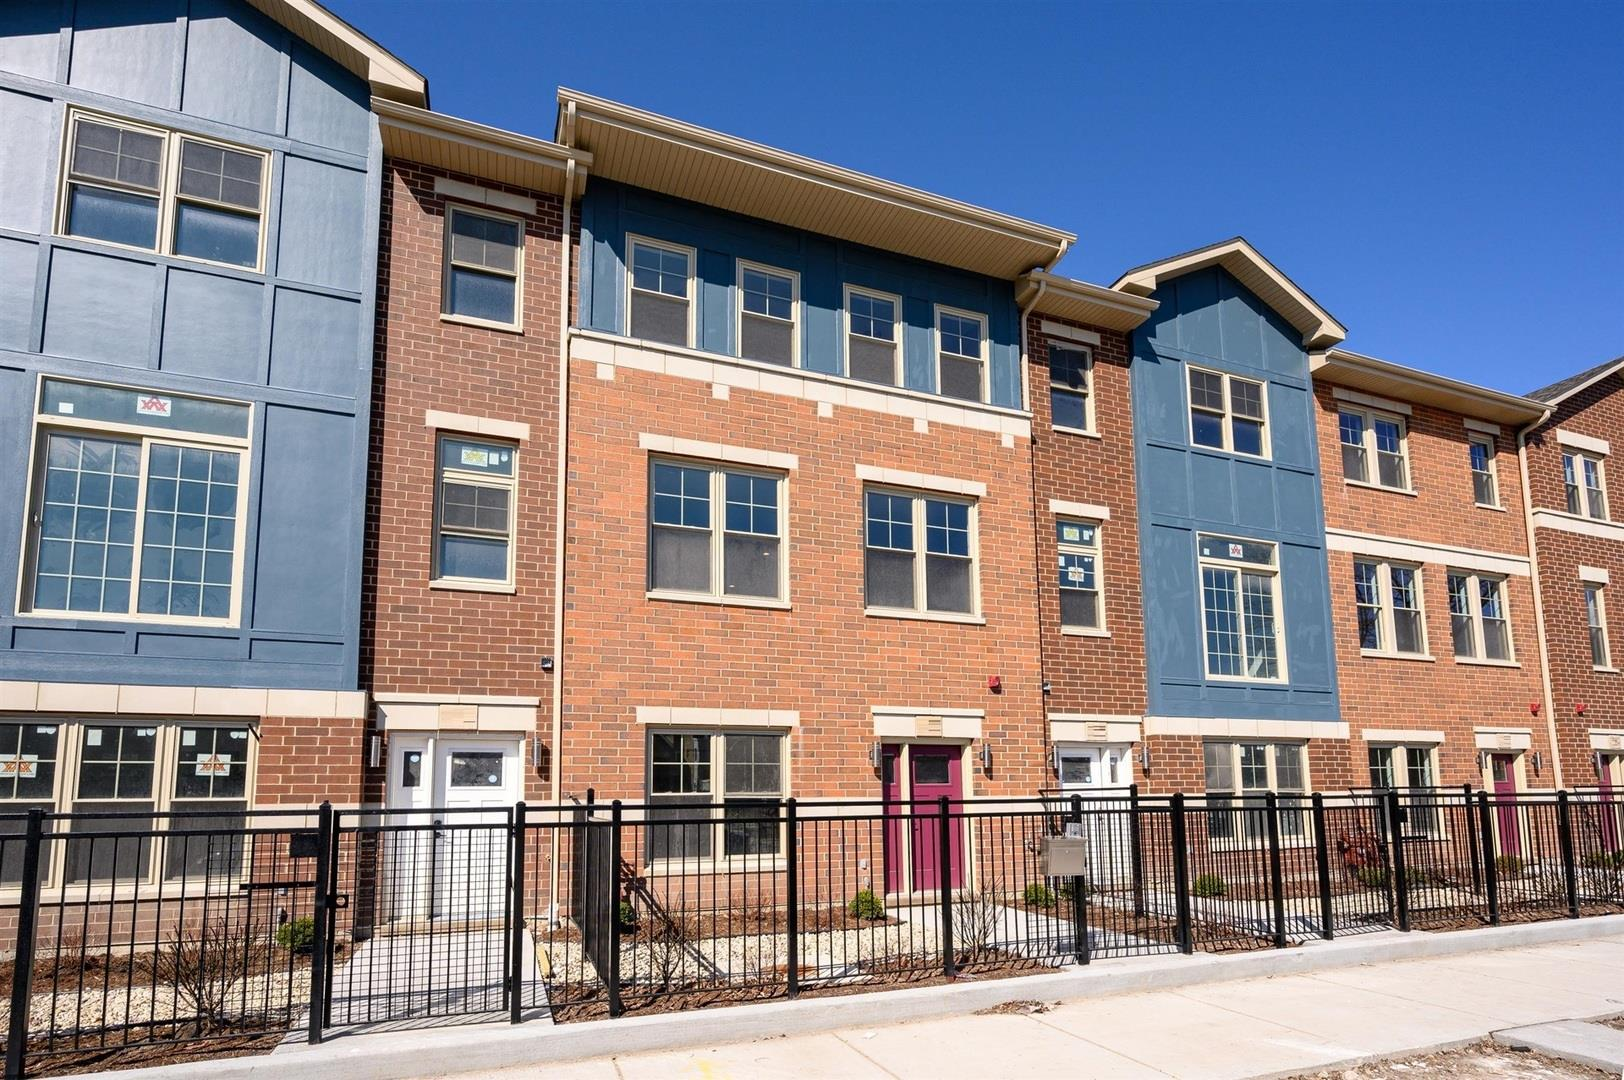 3241 S Stewart Avenue, Chicago, IL 60616 - #: 10861758